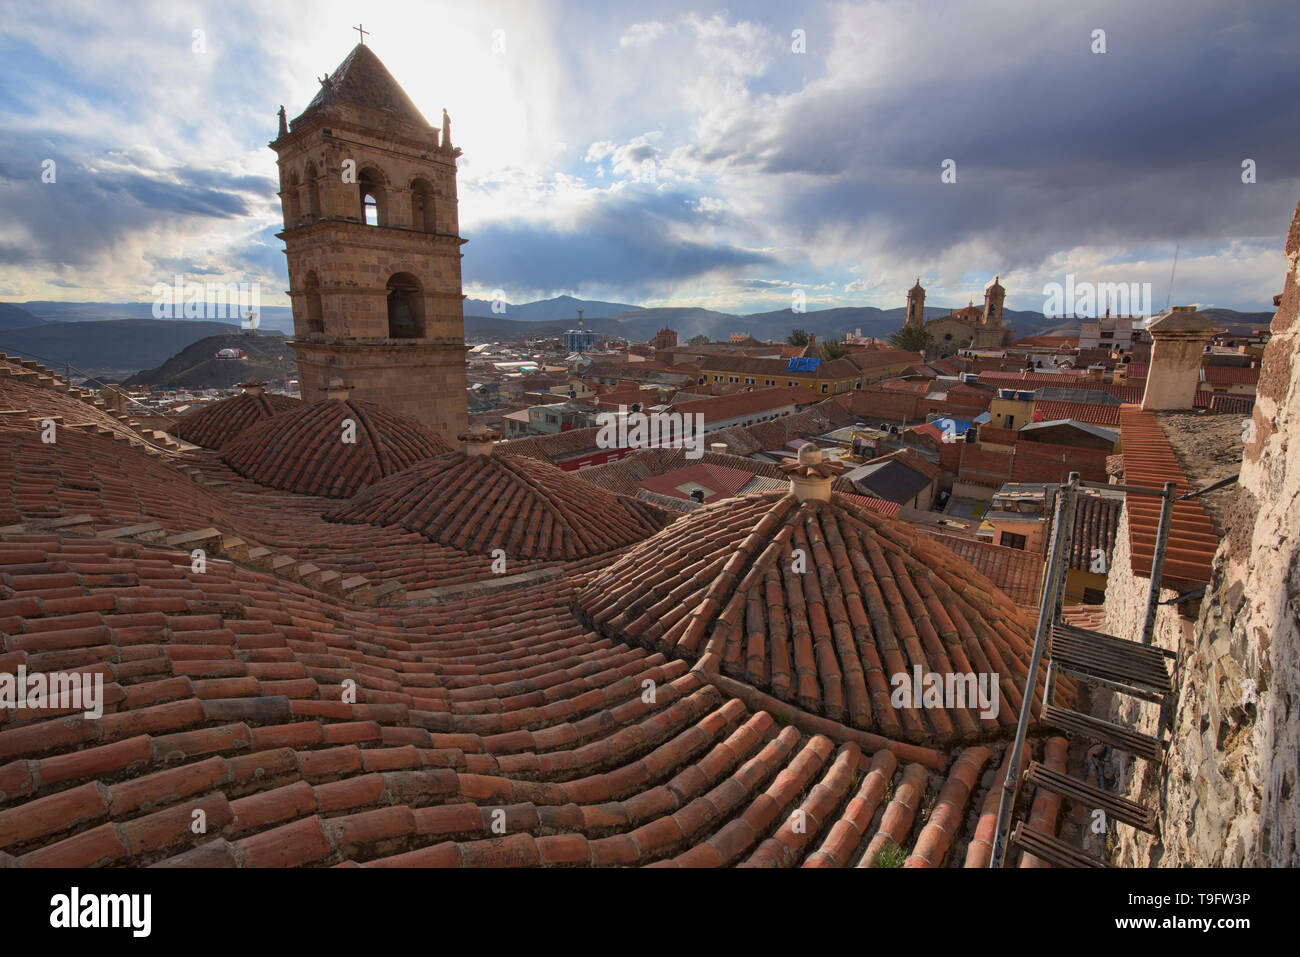 Rooftop view from the San Francisco Church and Convent, Potosí, Bolivia - Stock Image